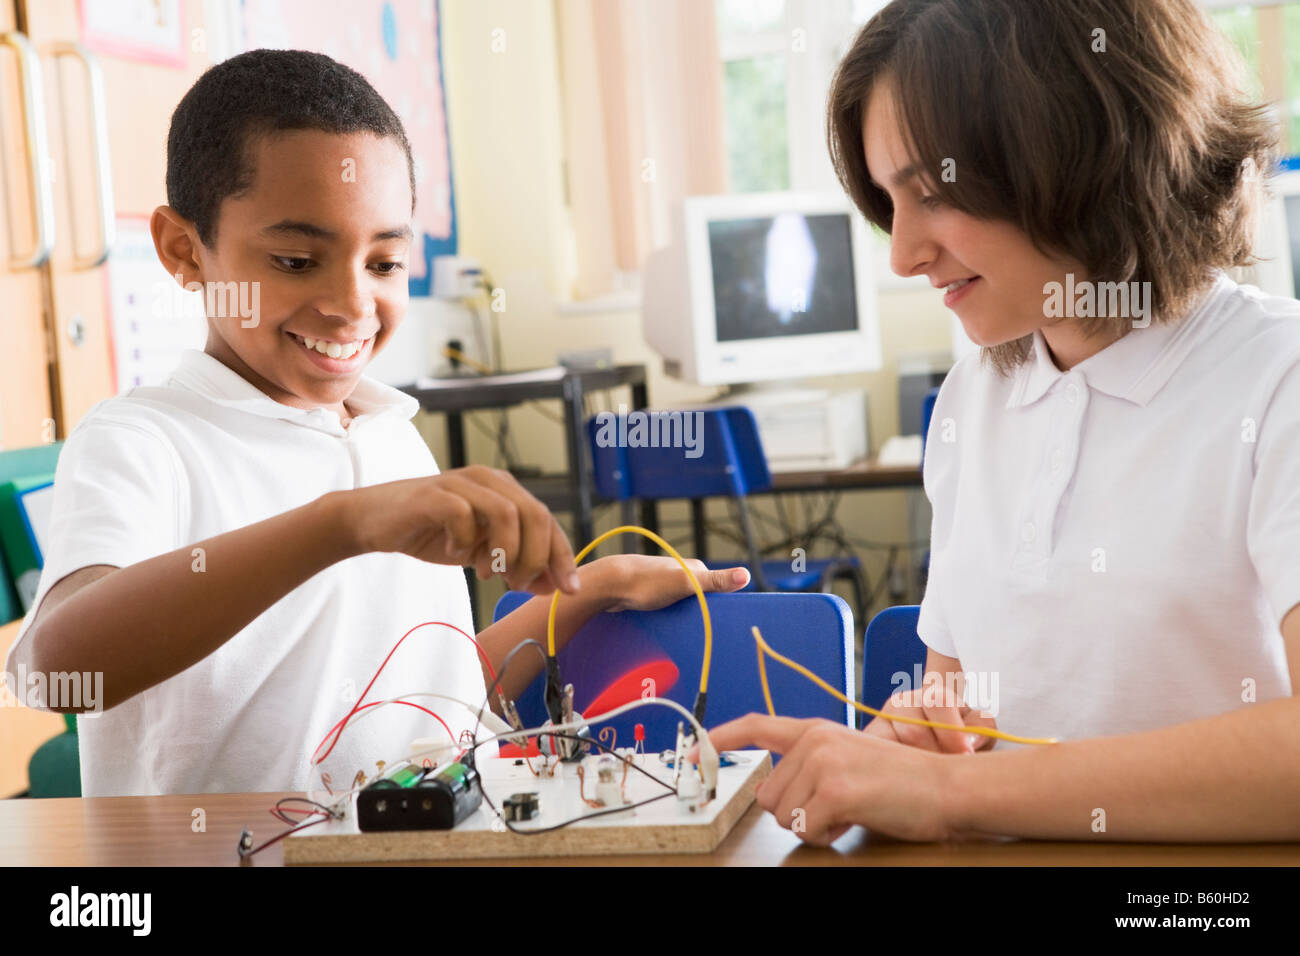 Students in class with electronic project - Stock Image